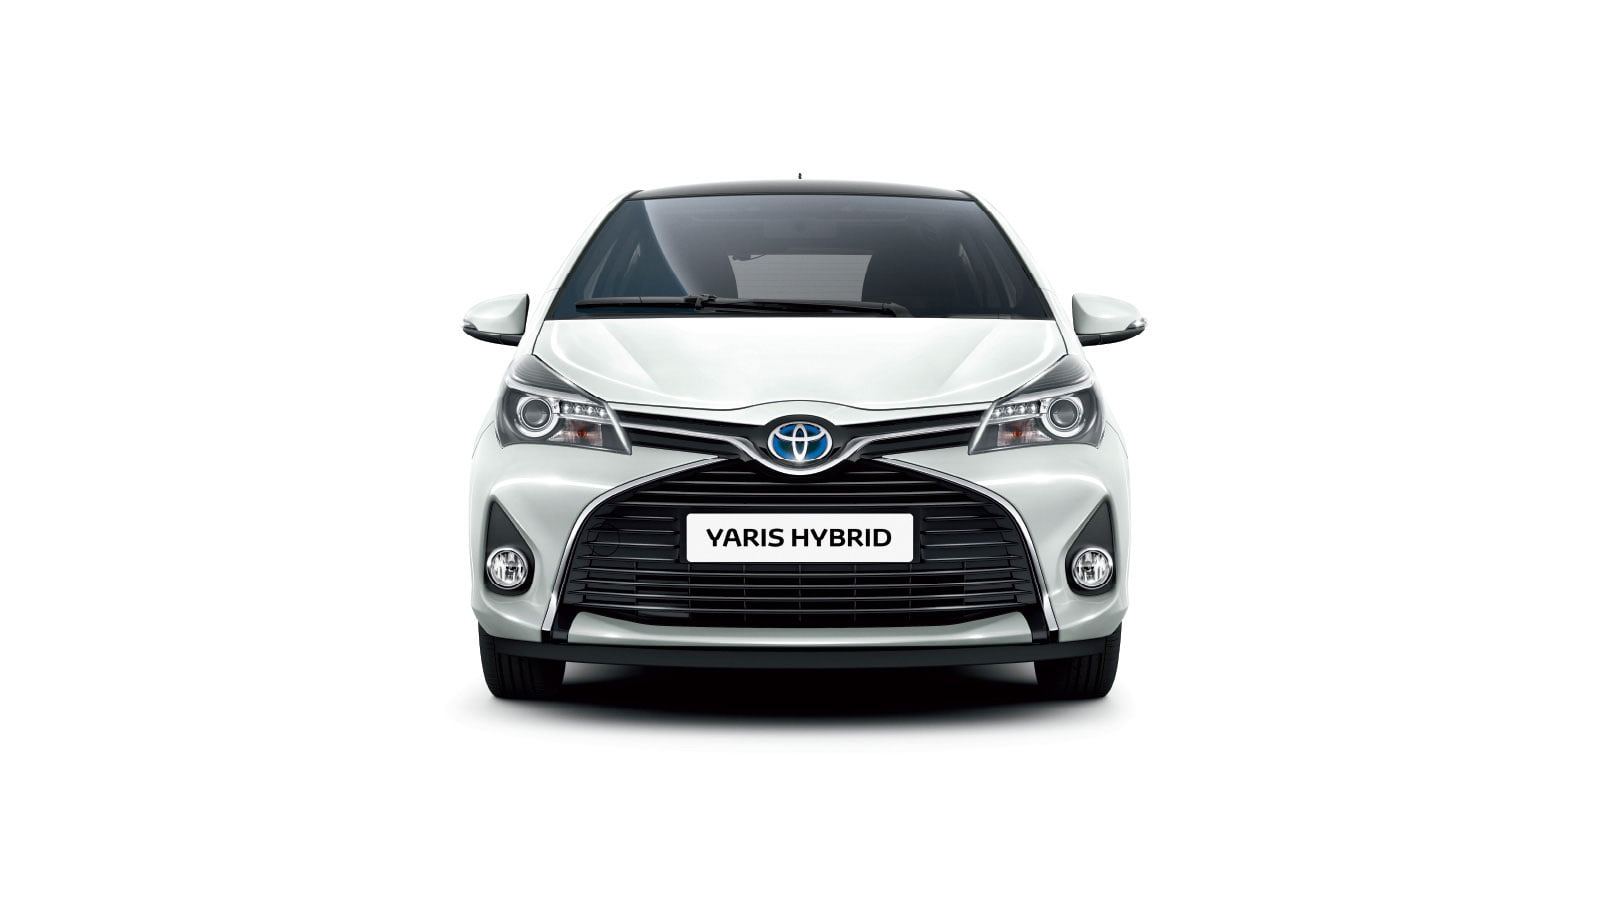 toyota yaris hybride voiture hybride essais prix. Black Bedroom Furniture Sets. Home Design Ideas